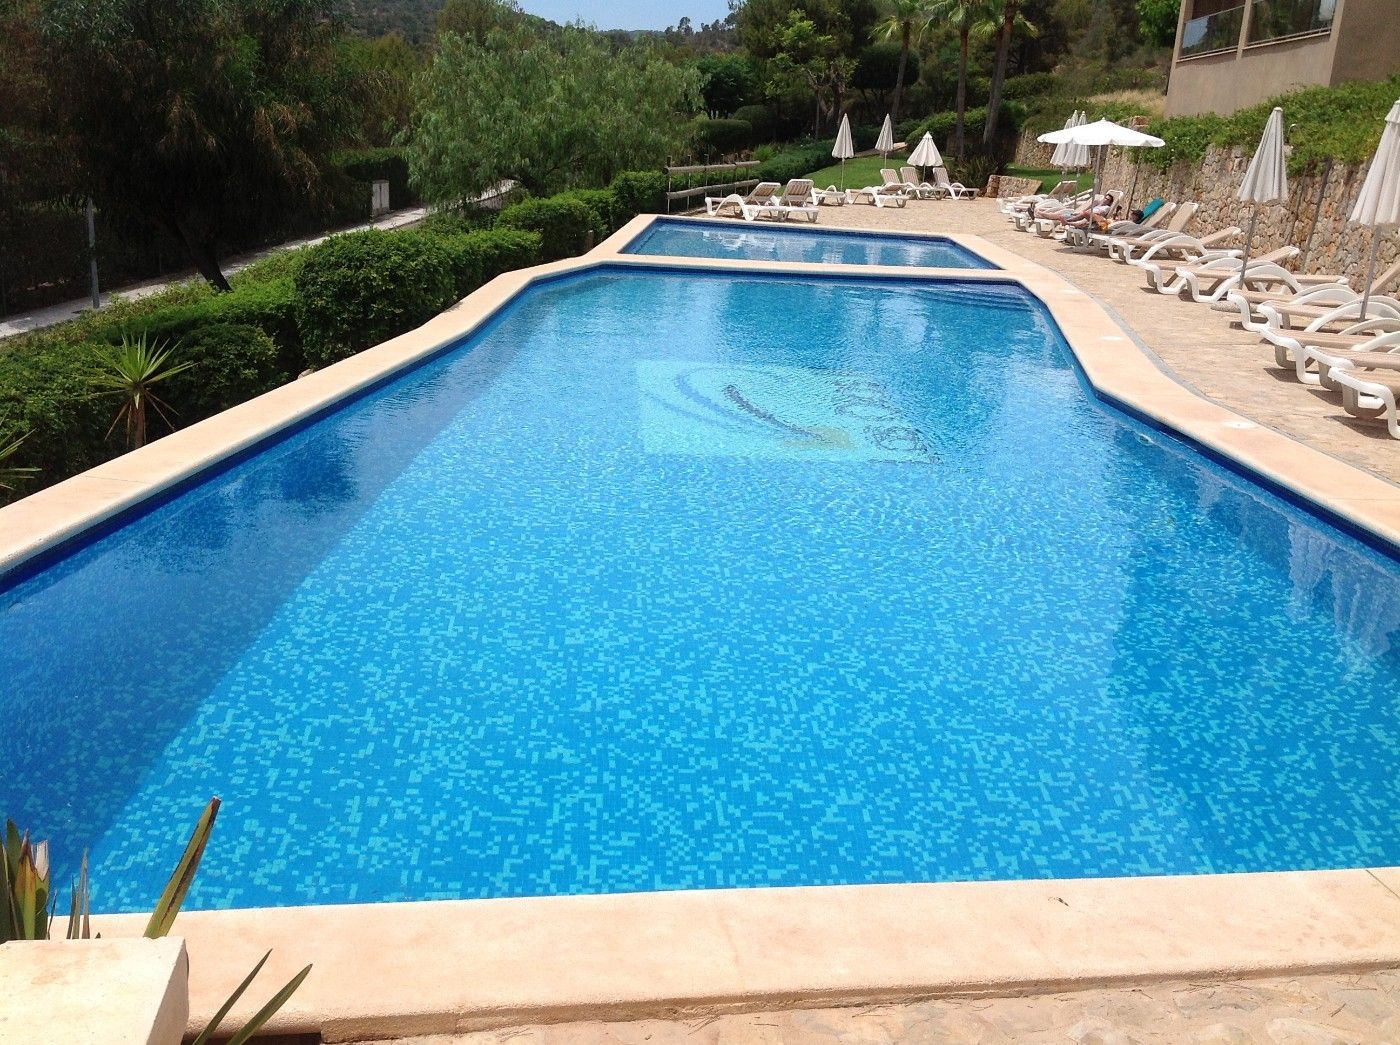 Apartment  Cala fornells. Piso moderno y tranquilo